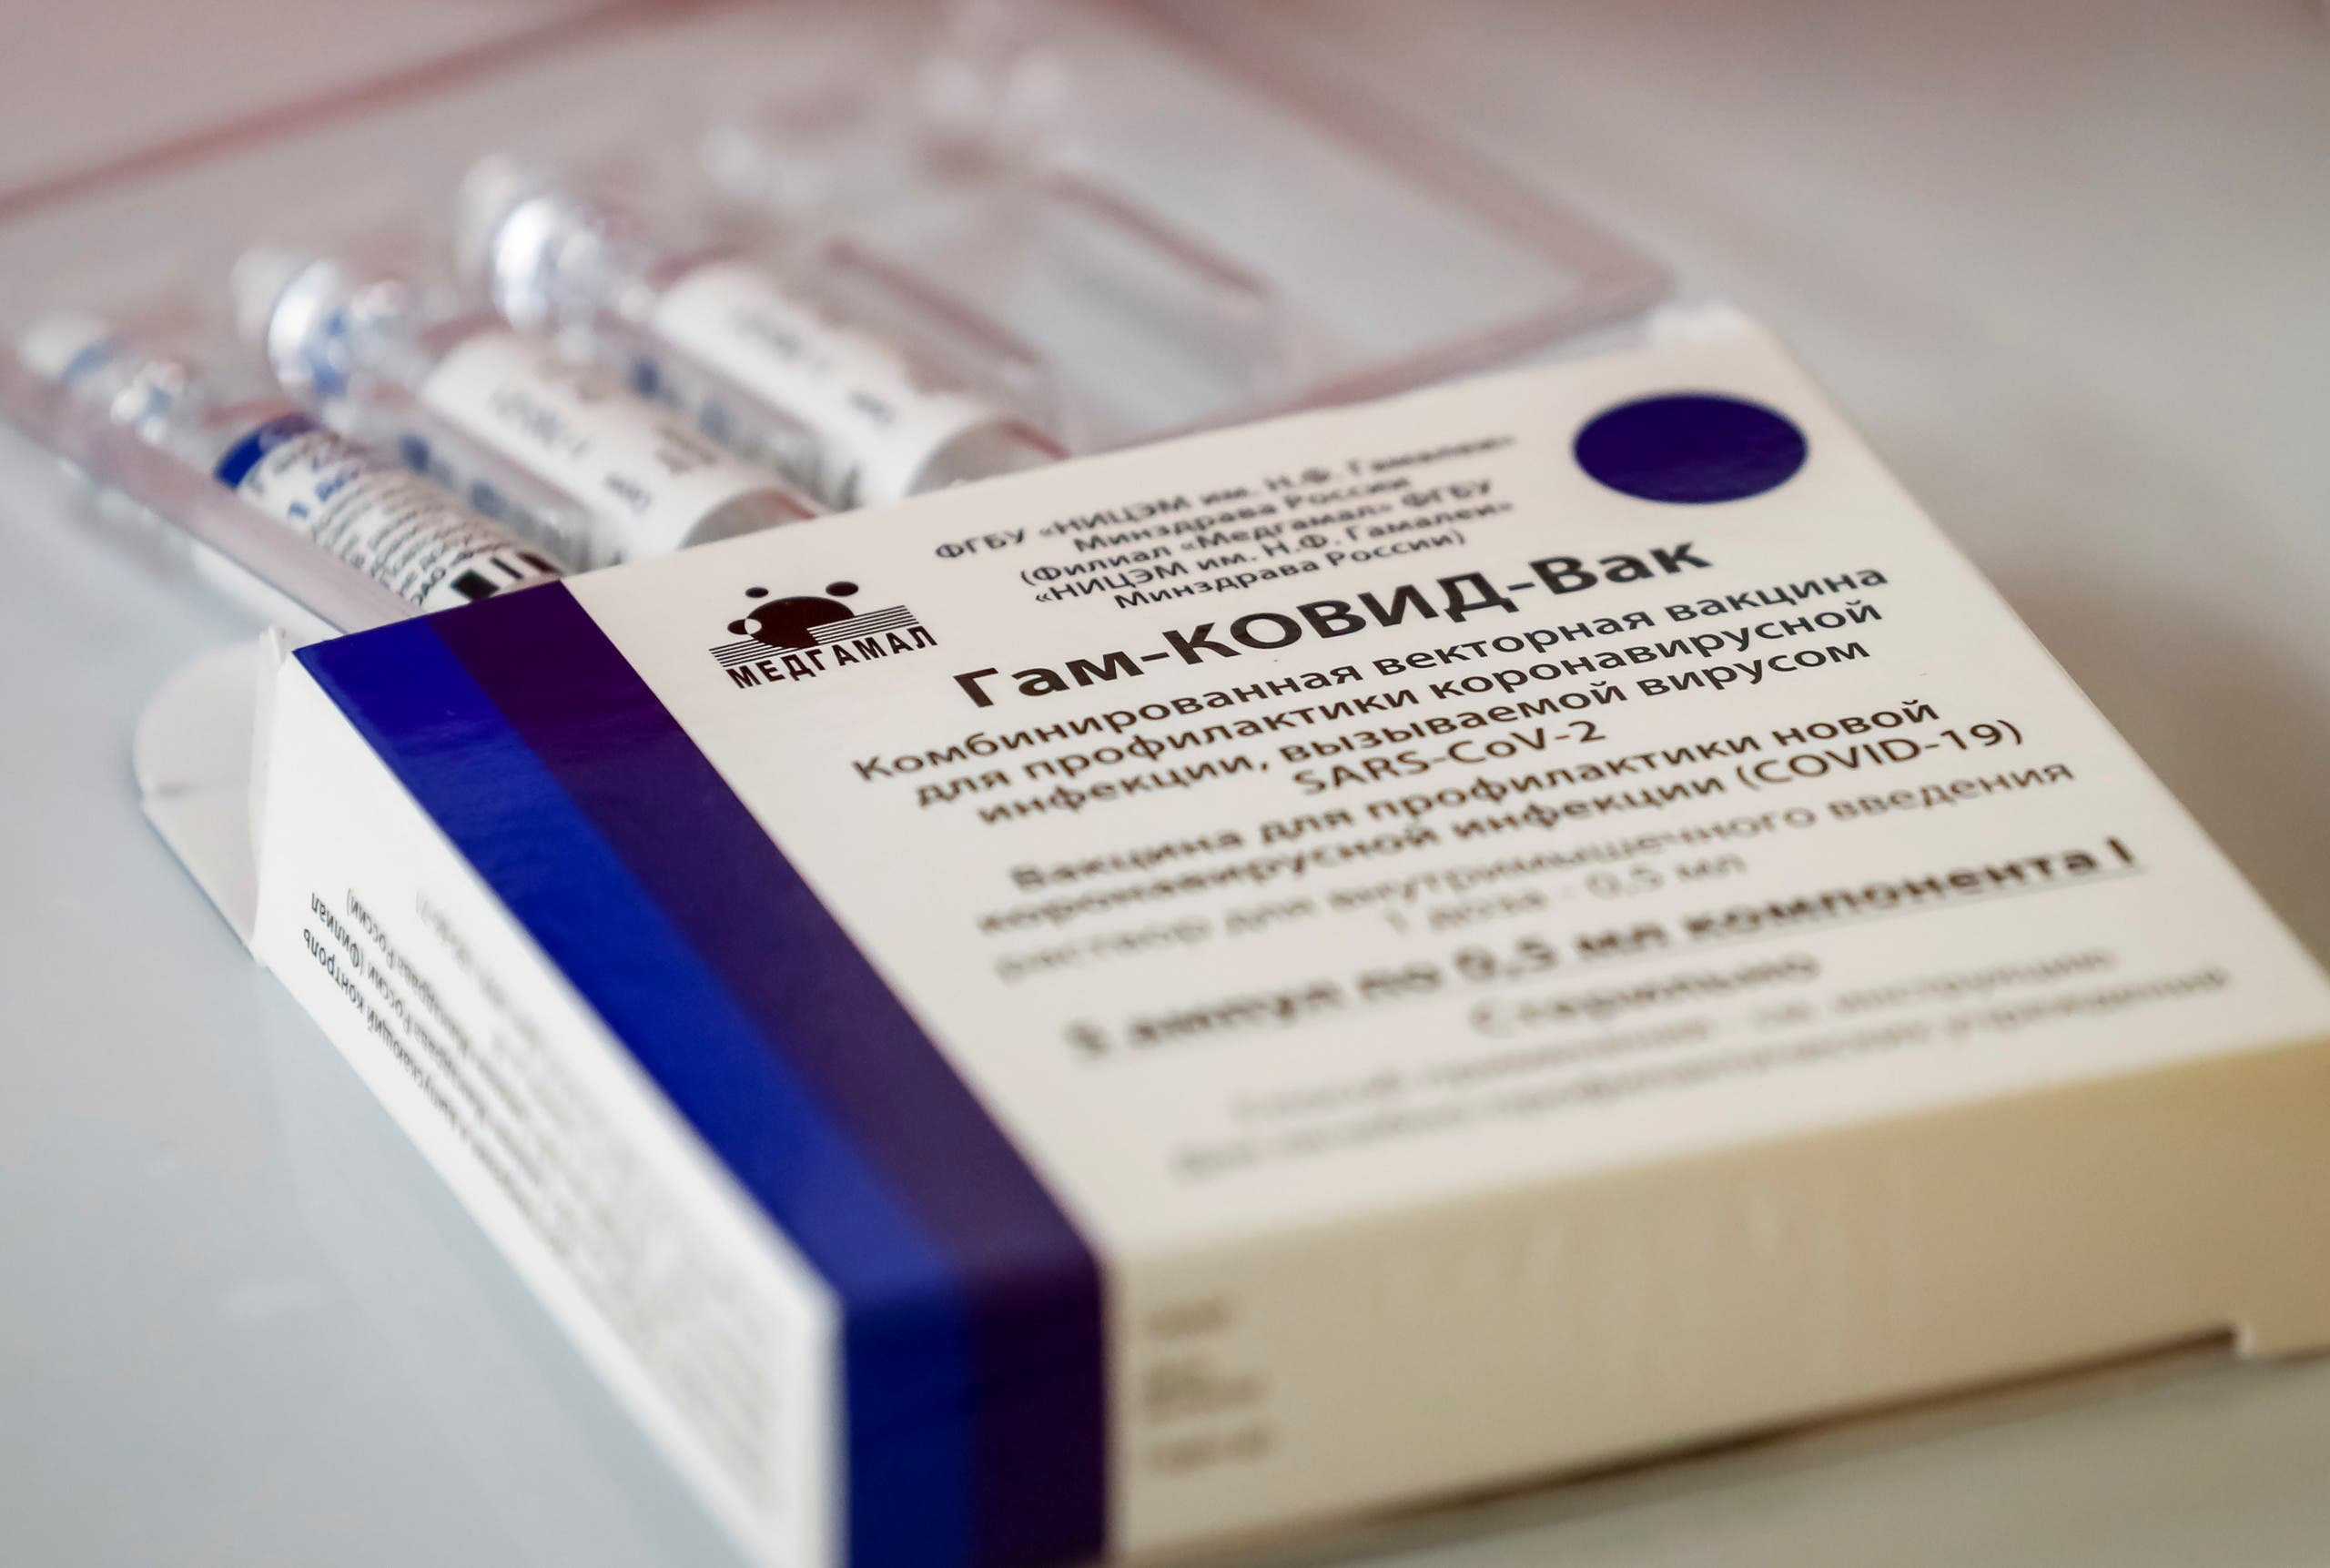 Muscovites inoculated more than six months ago are being urged to get a booster jab with the country's homegrown Sputnik V vaccine or the one-dose Sputnik Light. (File photo: Reuters)